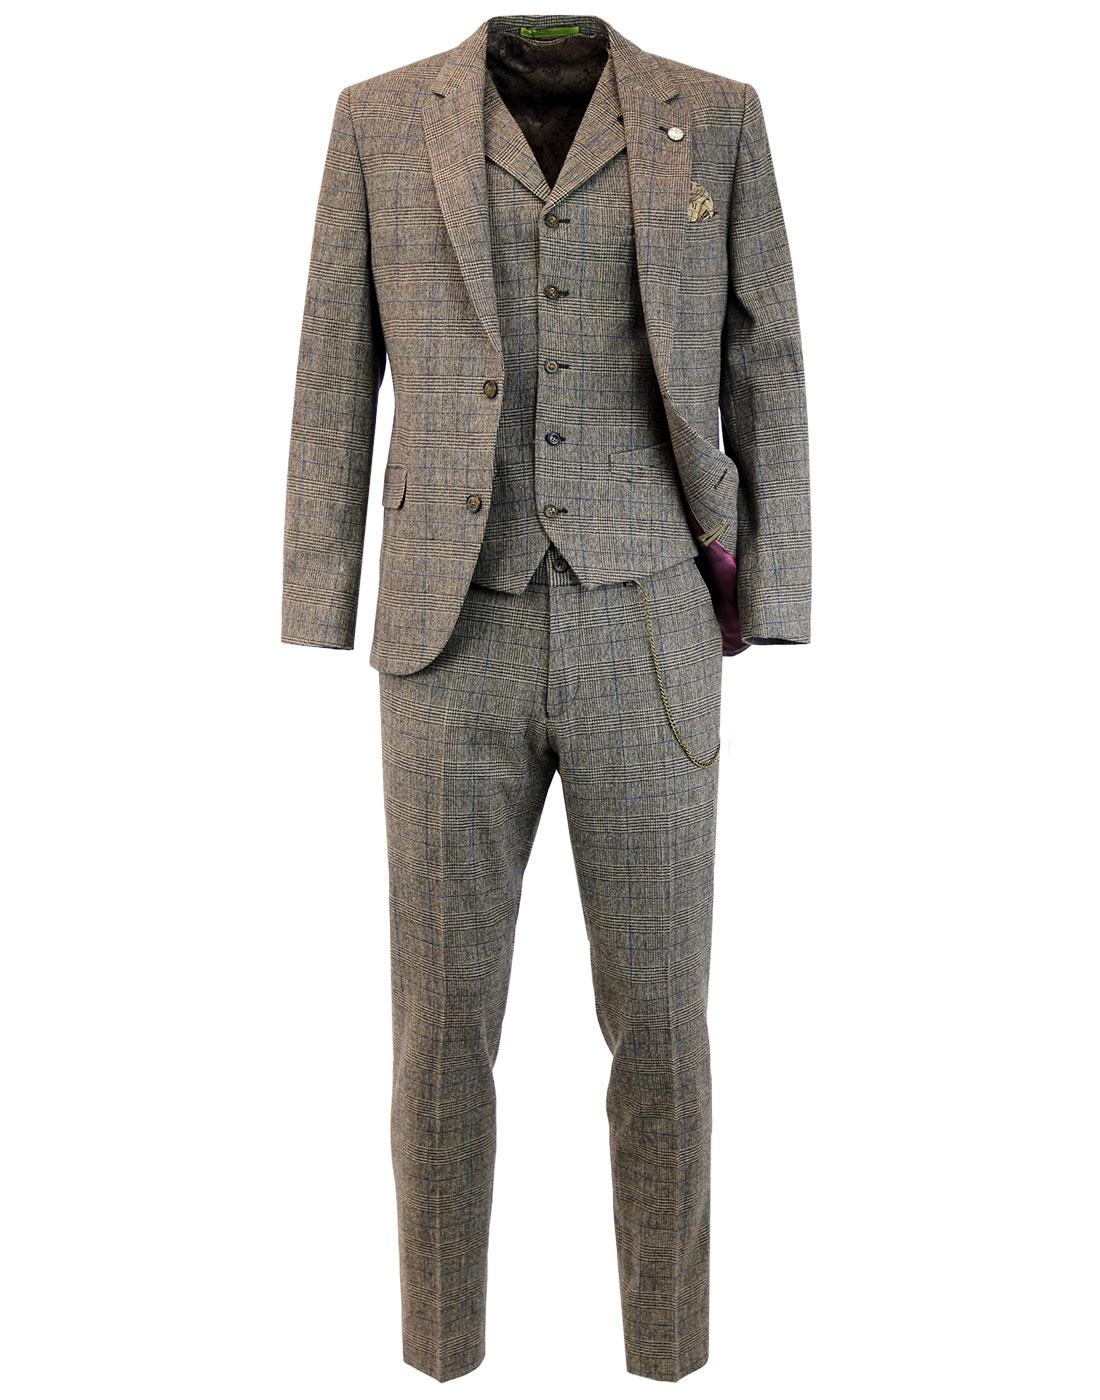 Towergate GIBSON LONDON Mod Prince of Wales Suit